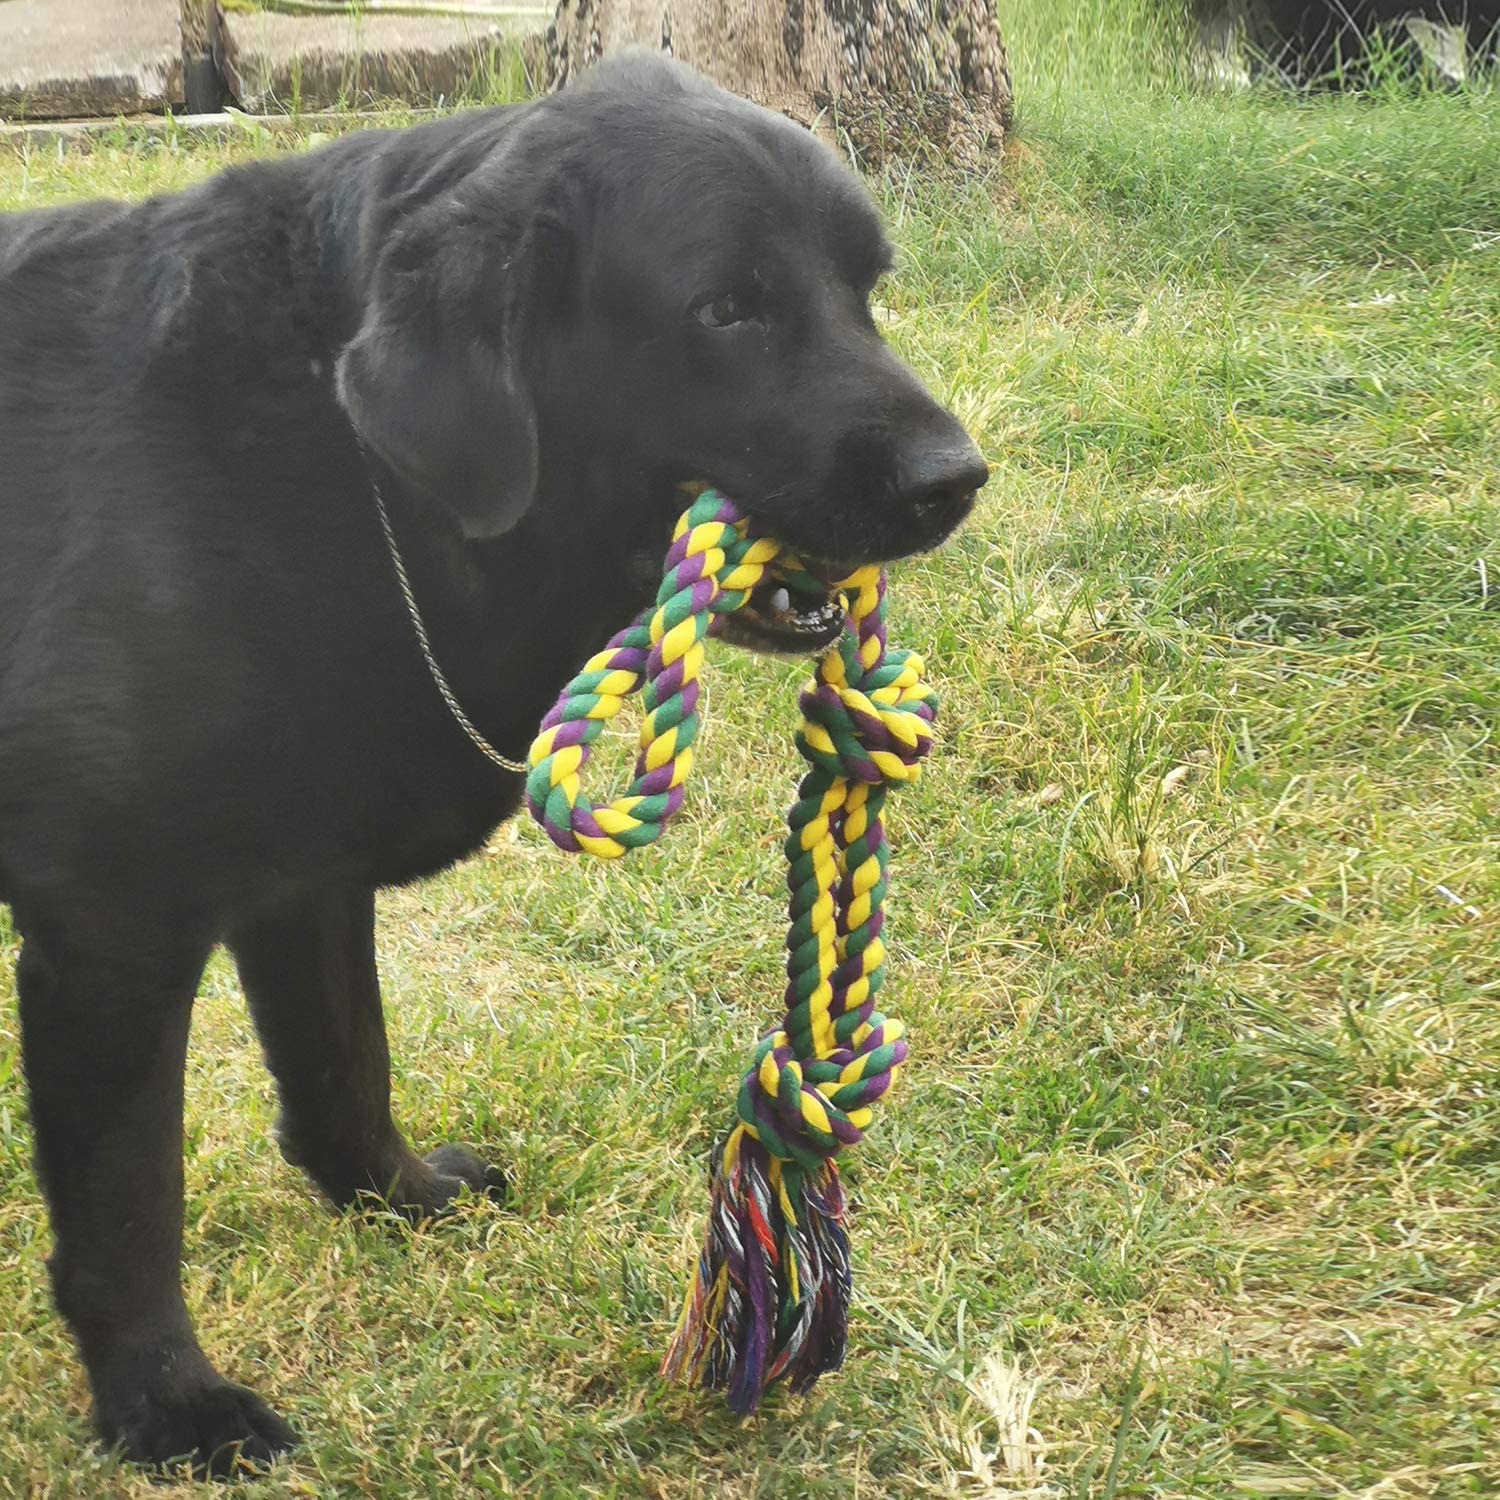 Dog Toys for Aggressive Chewers Designed for Tough Large Dogs Medium Dogs Durable Dog Rope Toy Set of 3 Pieces Size XL 30 inches 4 pounds